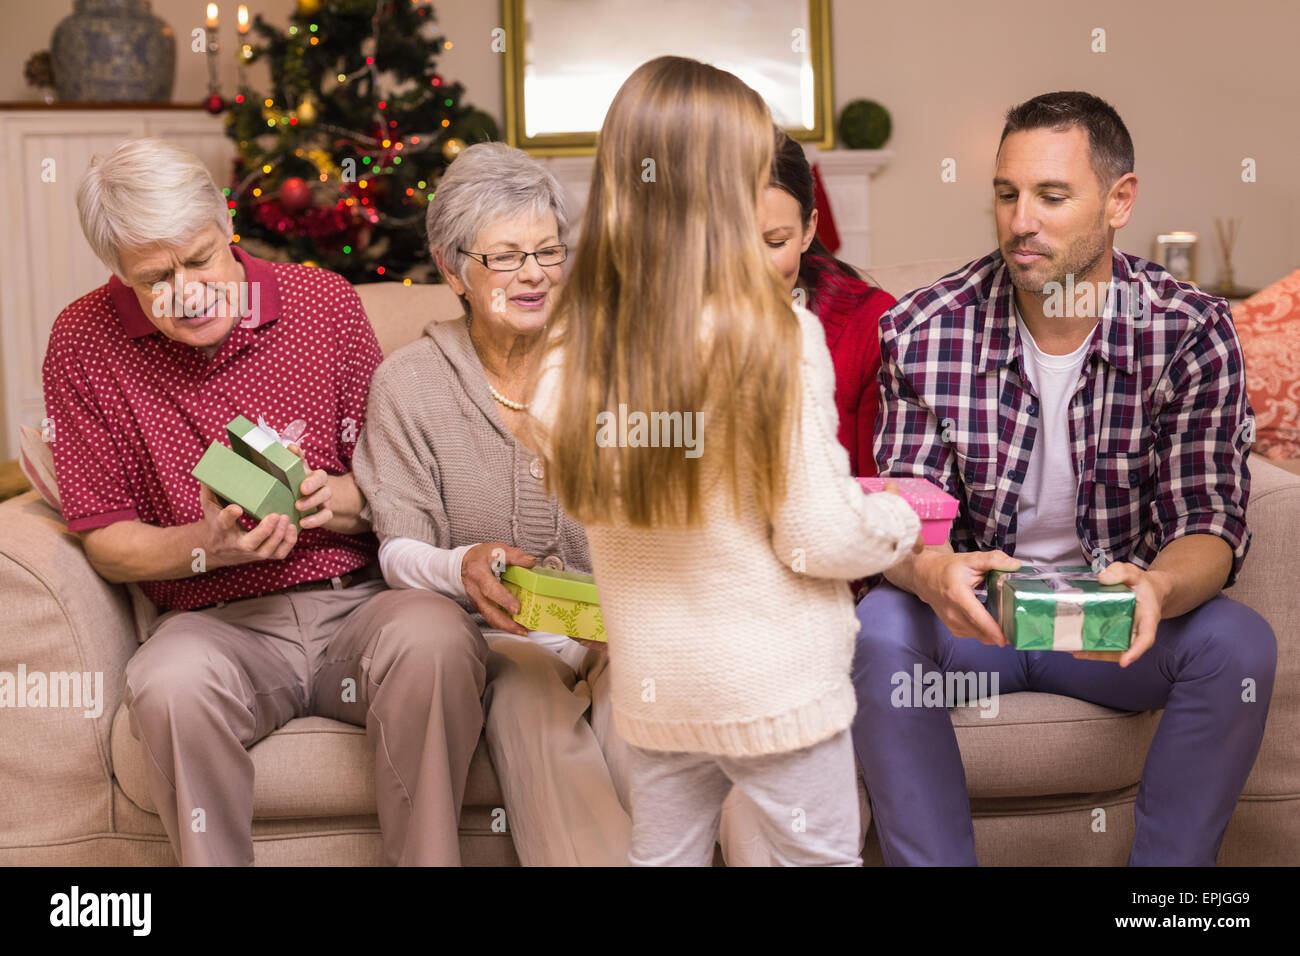 Cute little girl offering gift to her family - Stock Image